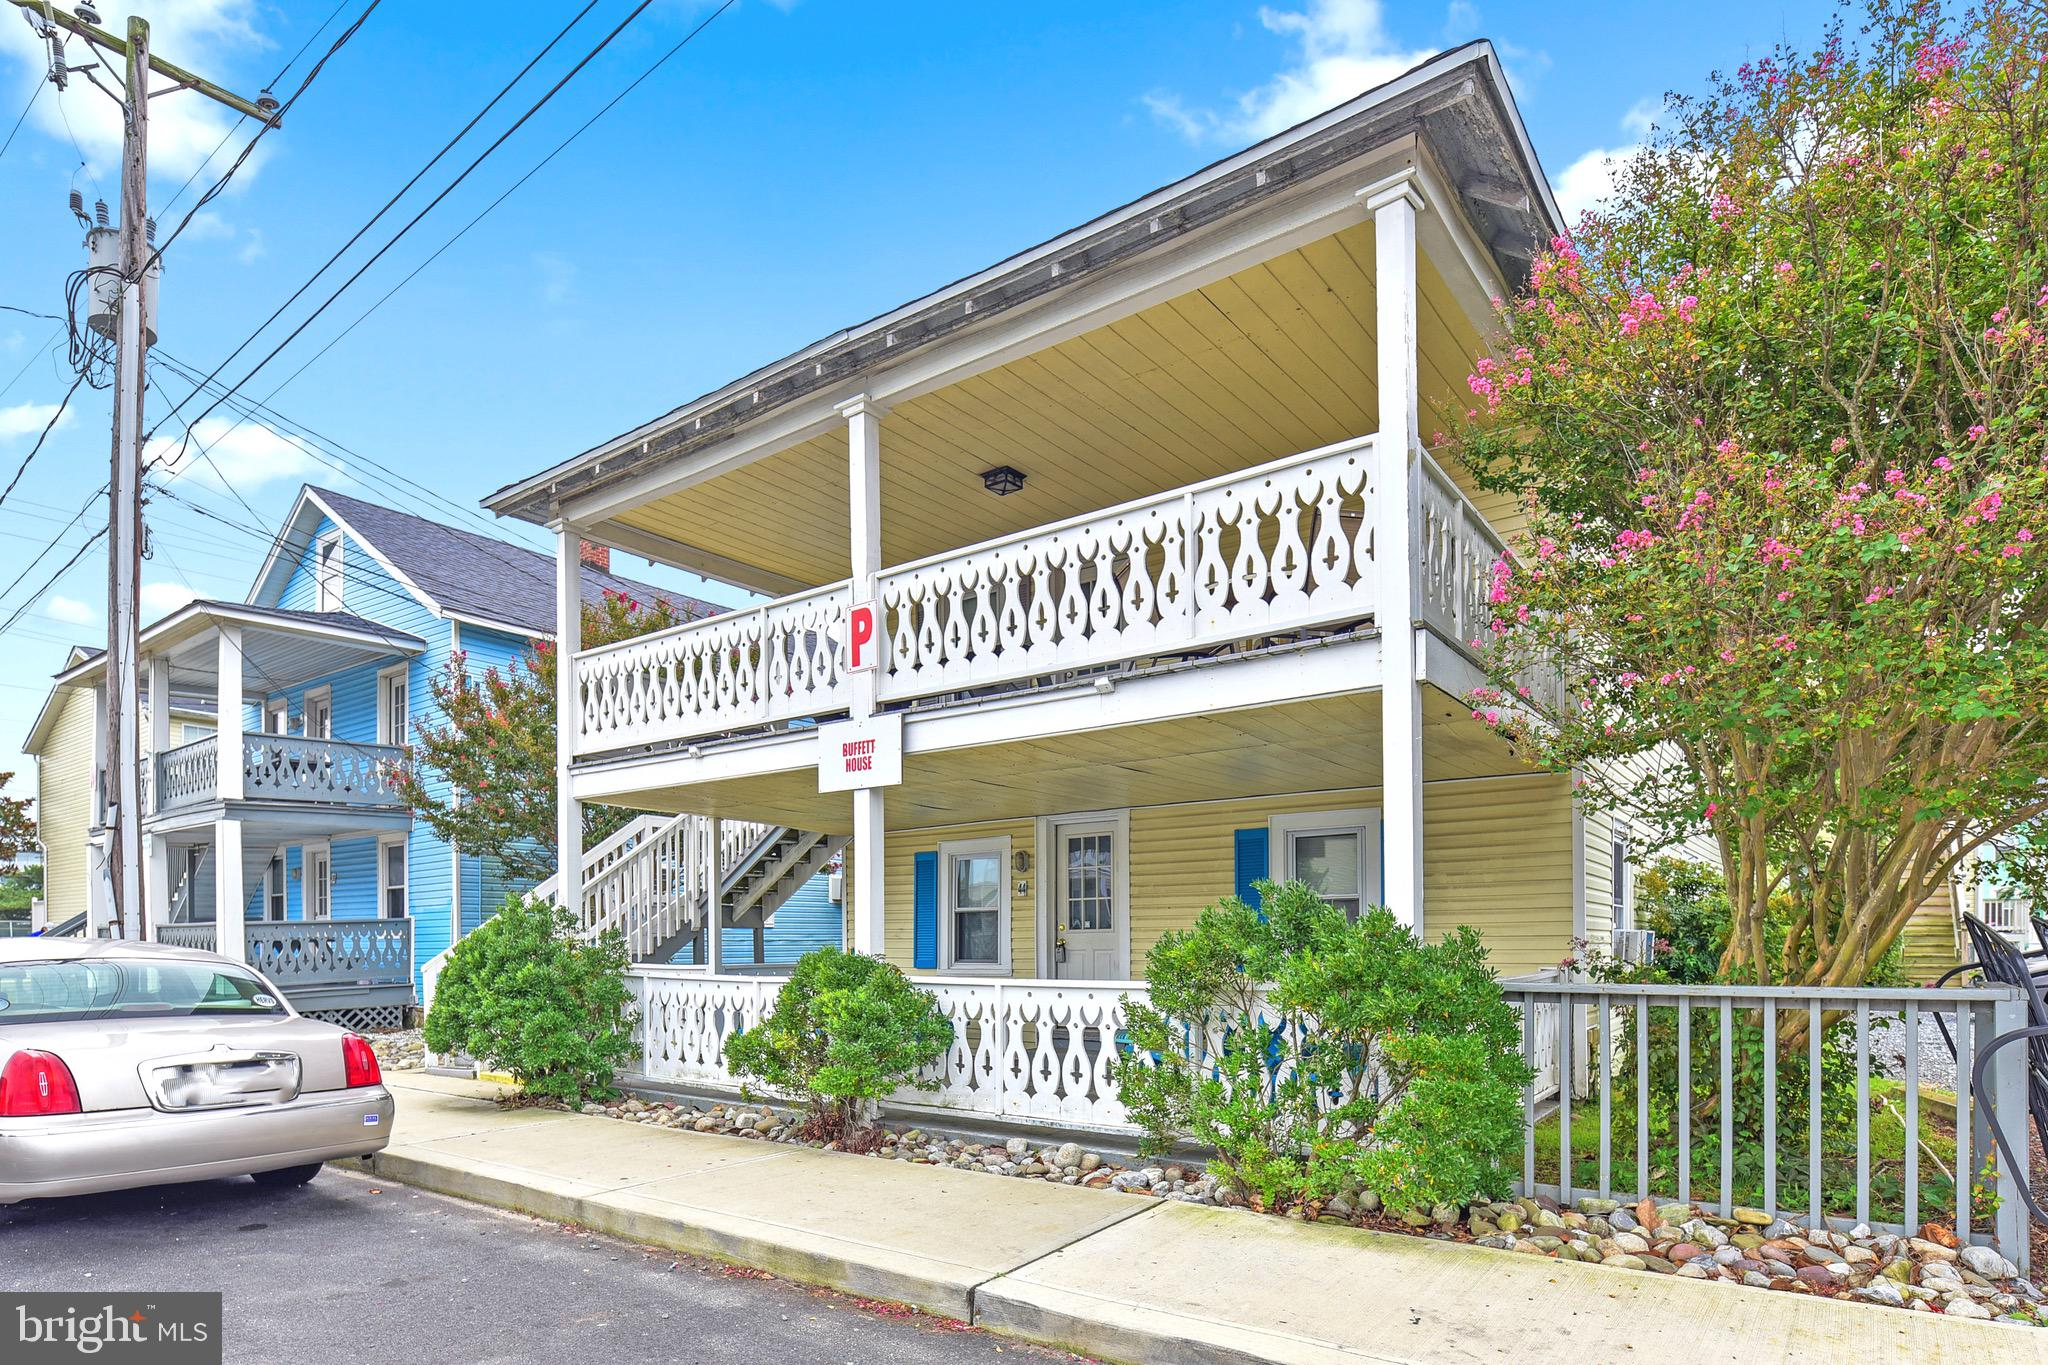 Great 3 Bedroom, 2 Bath Beach Cottage with  Pool and Parking just 2 Blocks from Beach and Boardwalk. Large Spacious Unit with Excellent Rental Potential of $30K , Large Covered Front Porch for Eating Crabs and those warm Summer Nights, This a Great Price for a Your Beach. Getaway.